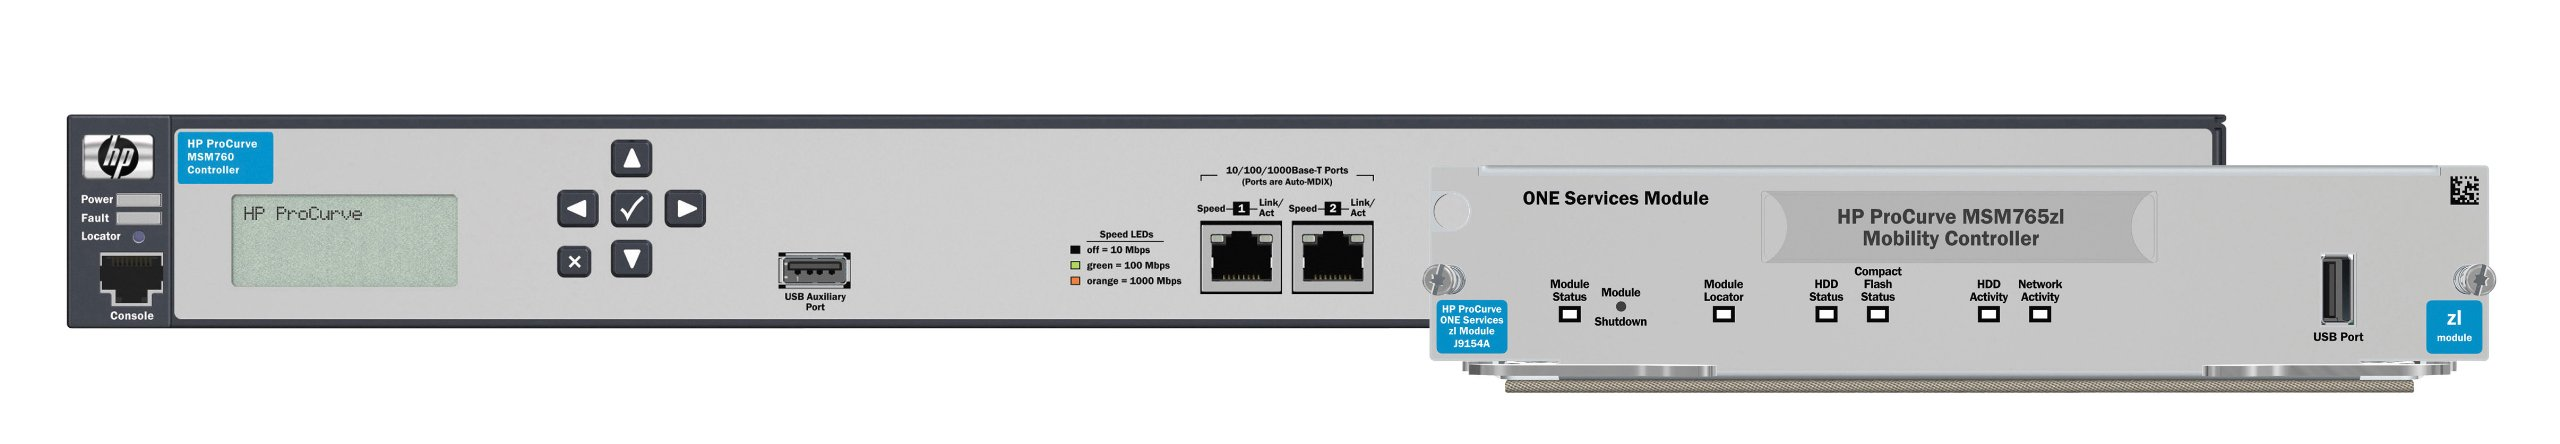 2BD5739 - HP ProCurve MSM760 Access Controller by HP